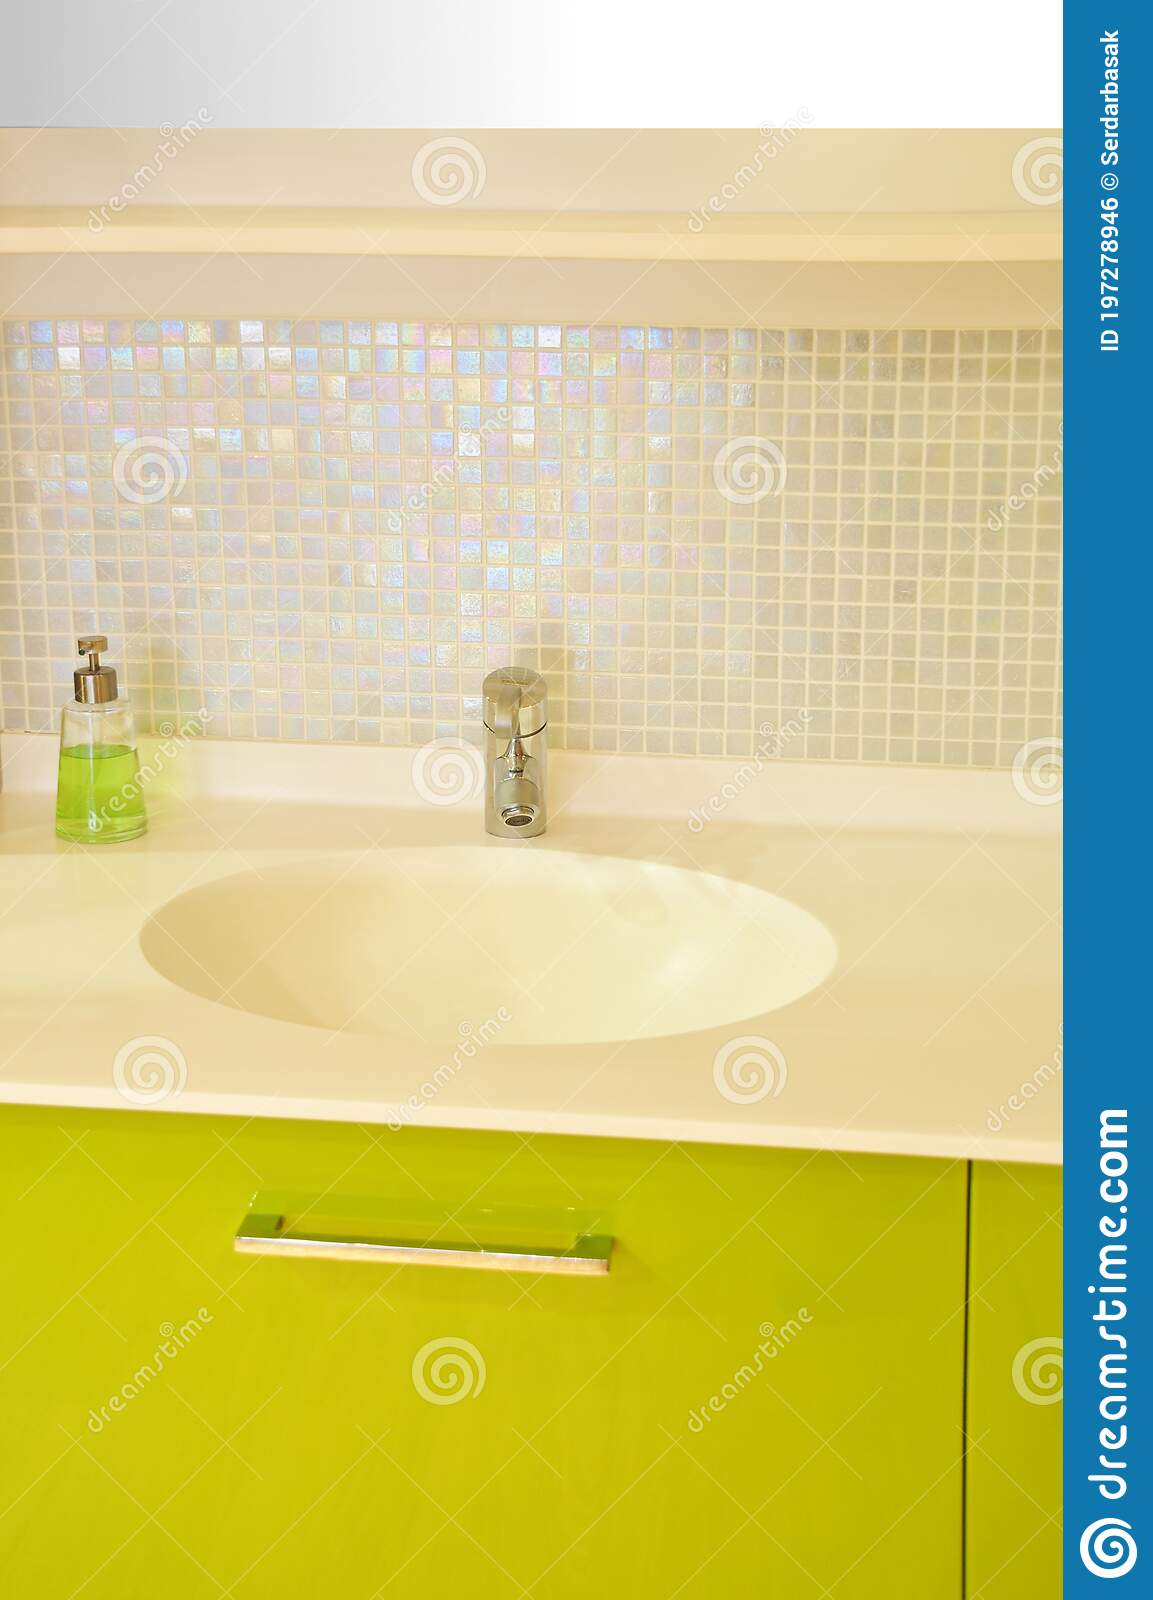 Modern Luxury Bathroom Sink And Cabinet Design Stock Photo Image Of Faucet Indoor 197278946